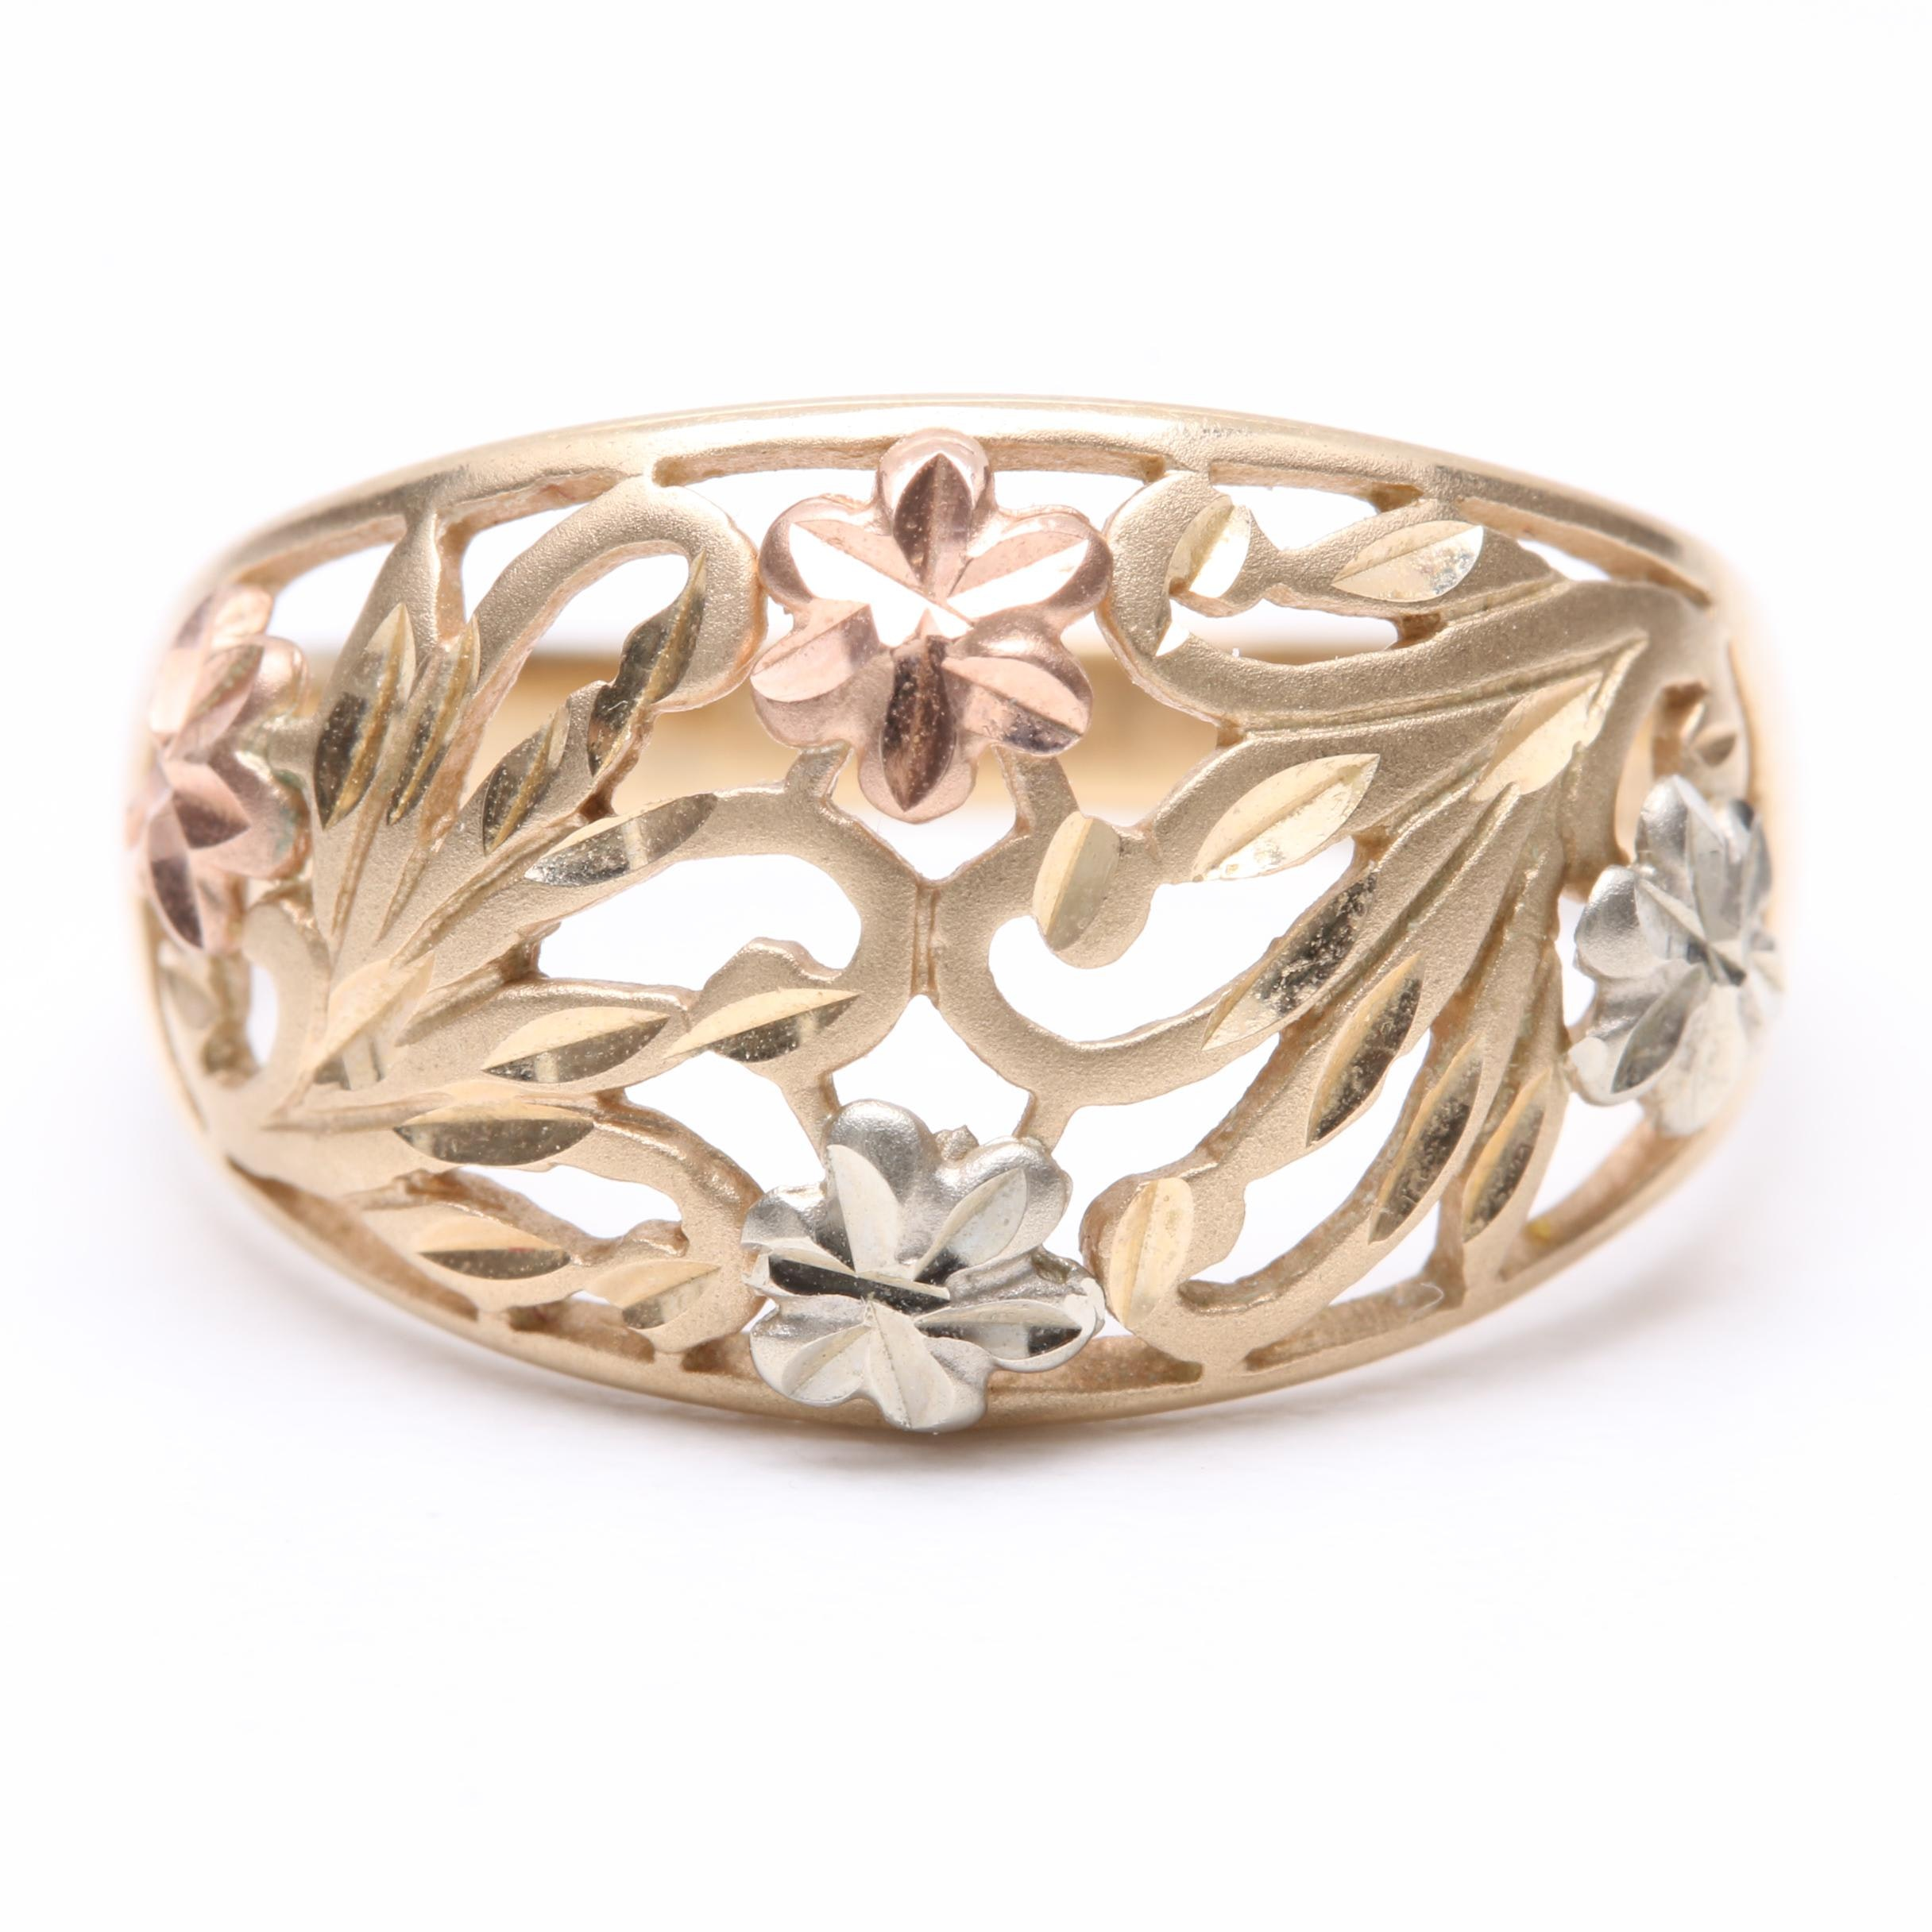 Michael Anthony 10K Yellow Gold Ring with White and Rose Gold Floral Accents